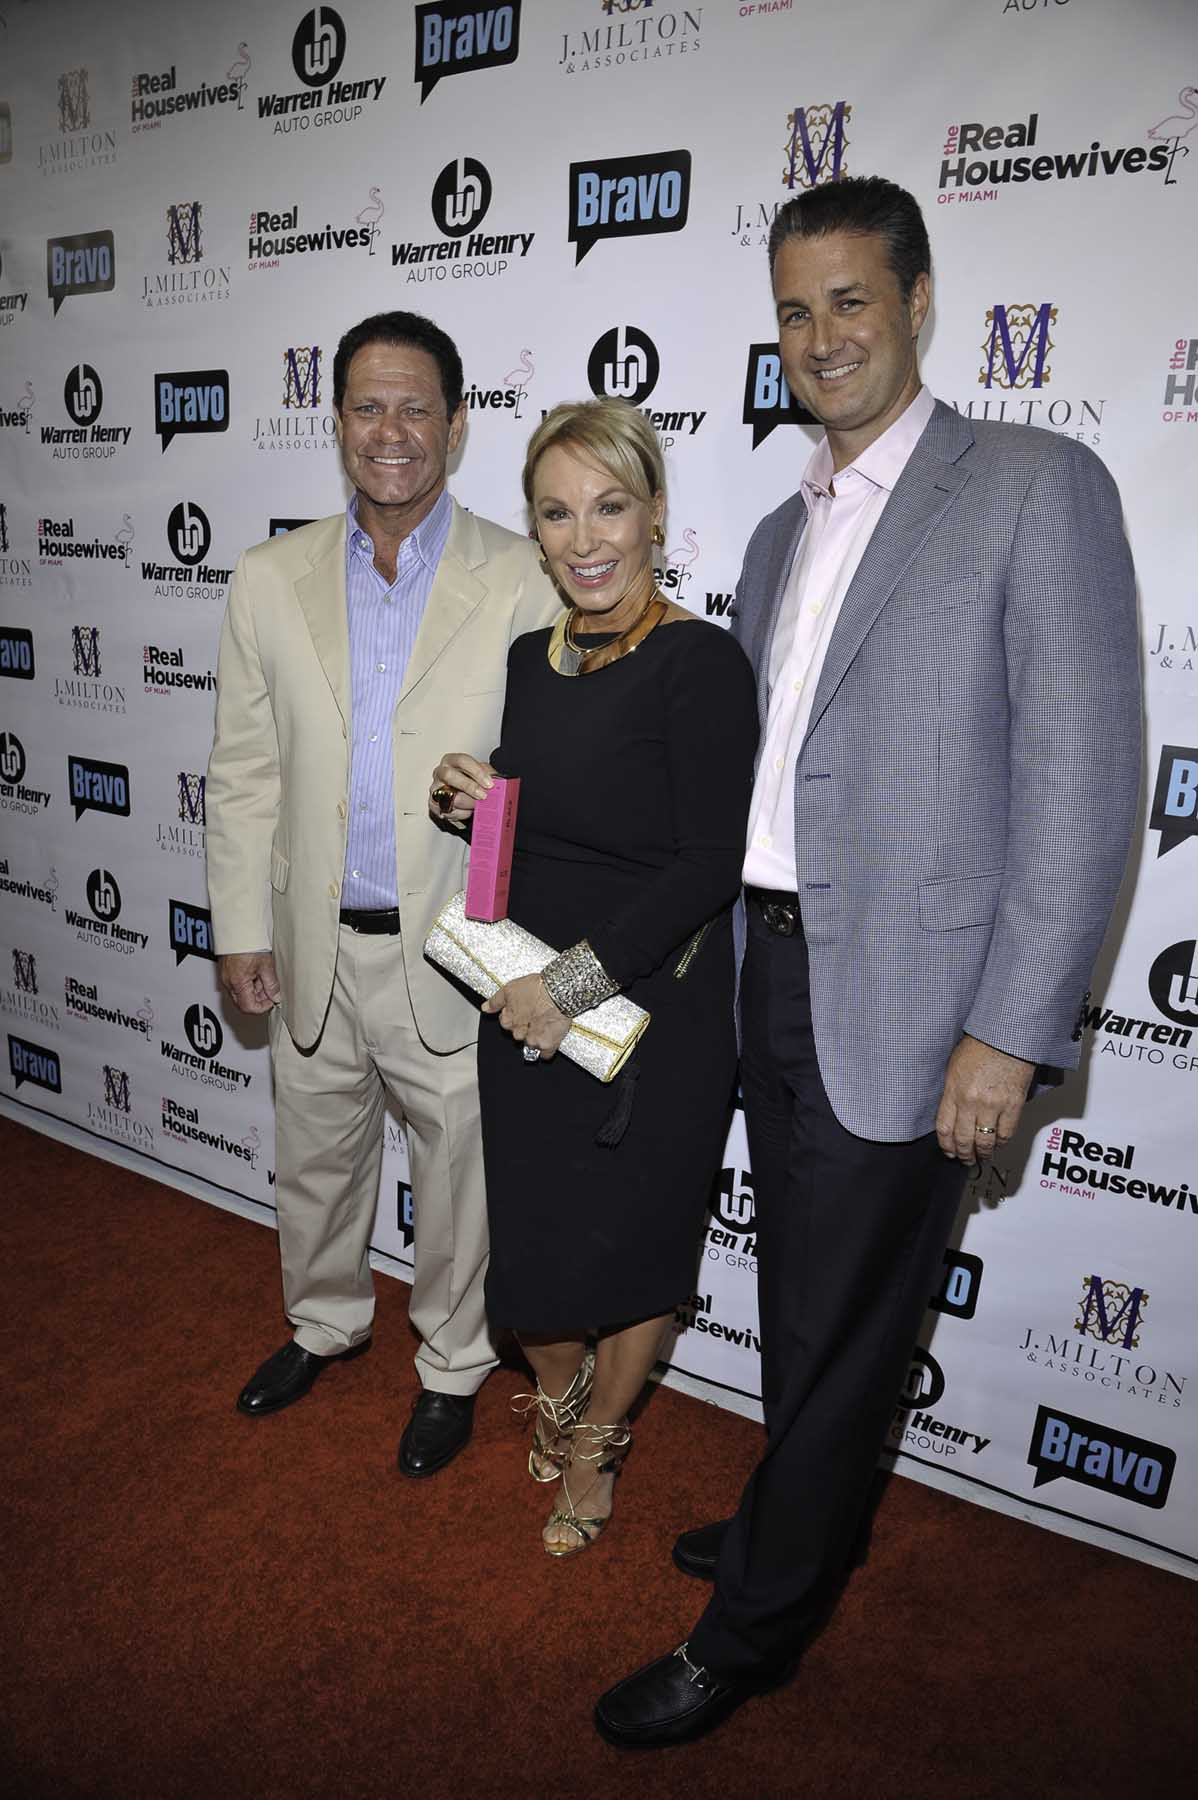 Warren Henry Zinn, President and CEO of Warren Henry Auto Group; Lea Black of The Real Housewives of Miami – Season 3; and Erik Day, Vice President and CFO of Warren Henry Auto Group